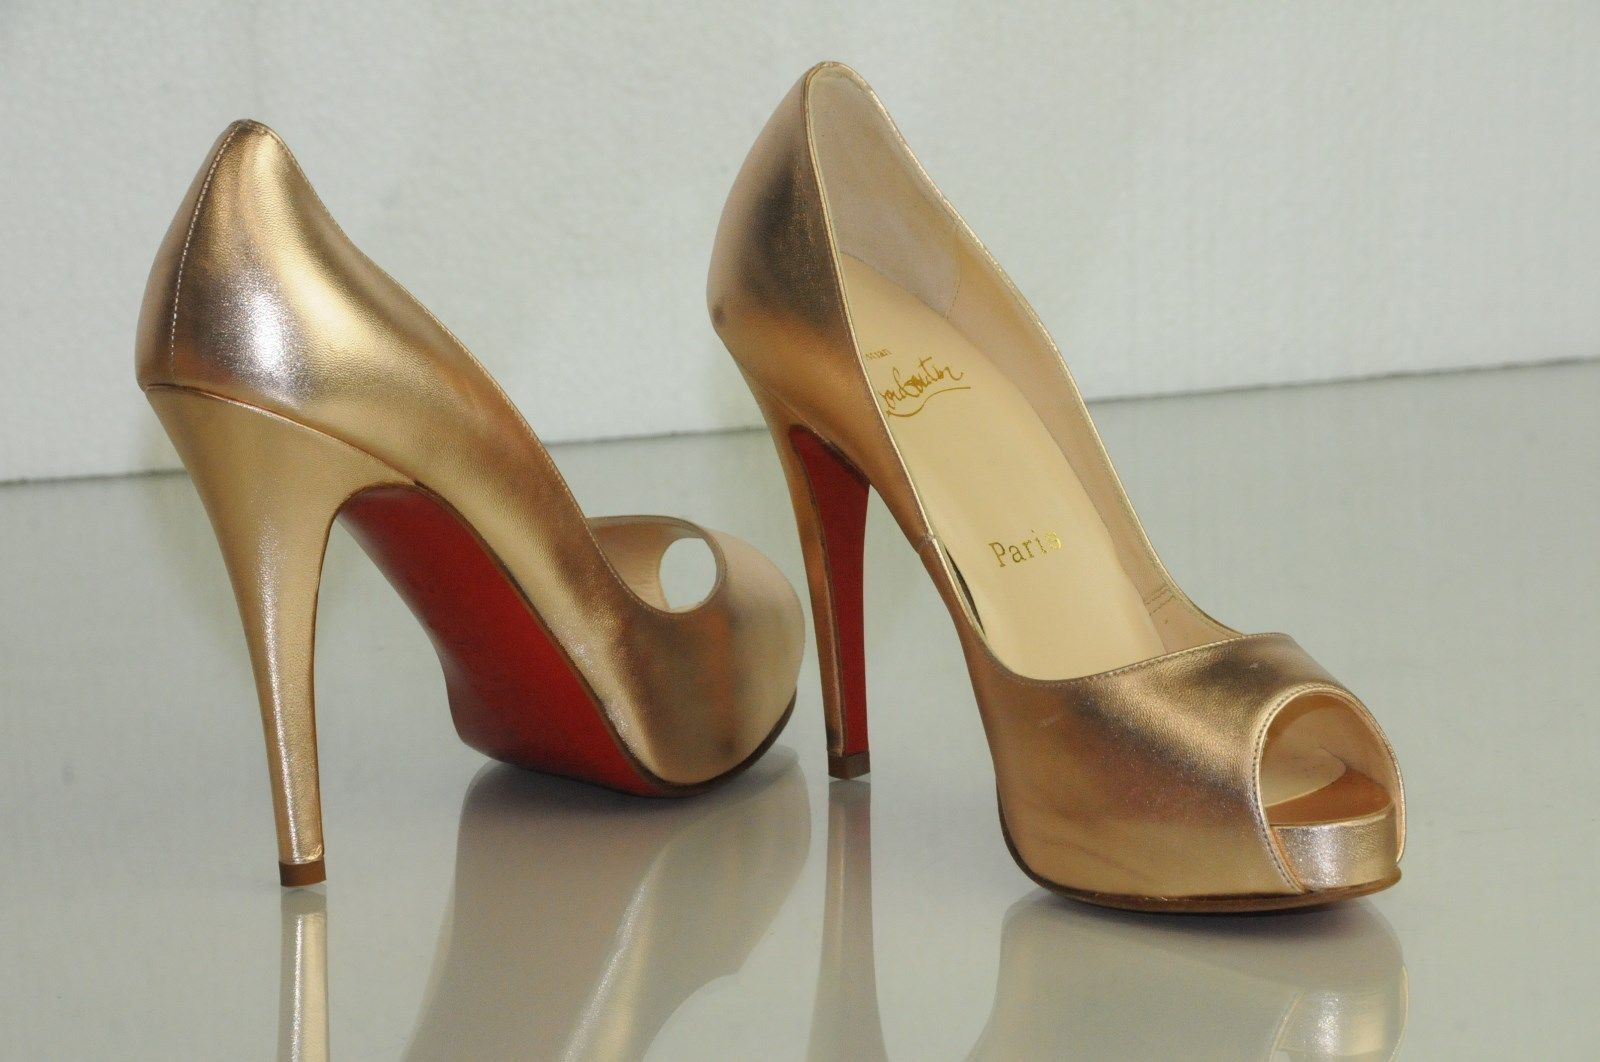 New CHRISTIAN LOUBOUTIN VERY PRIVE pink gold NUDE Peep Toe Pumps SHOES 36.5 37.5